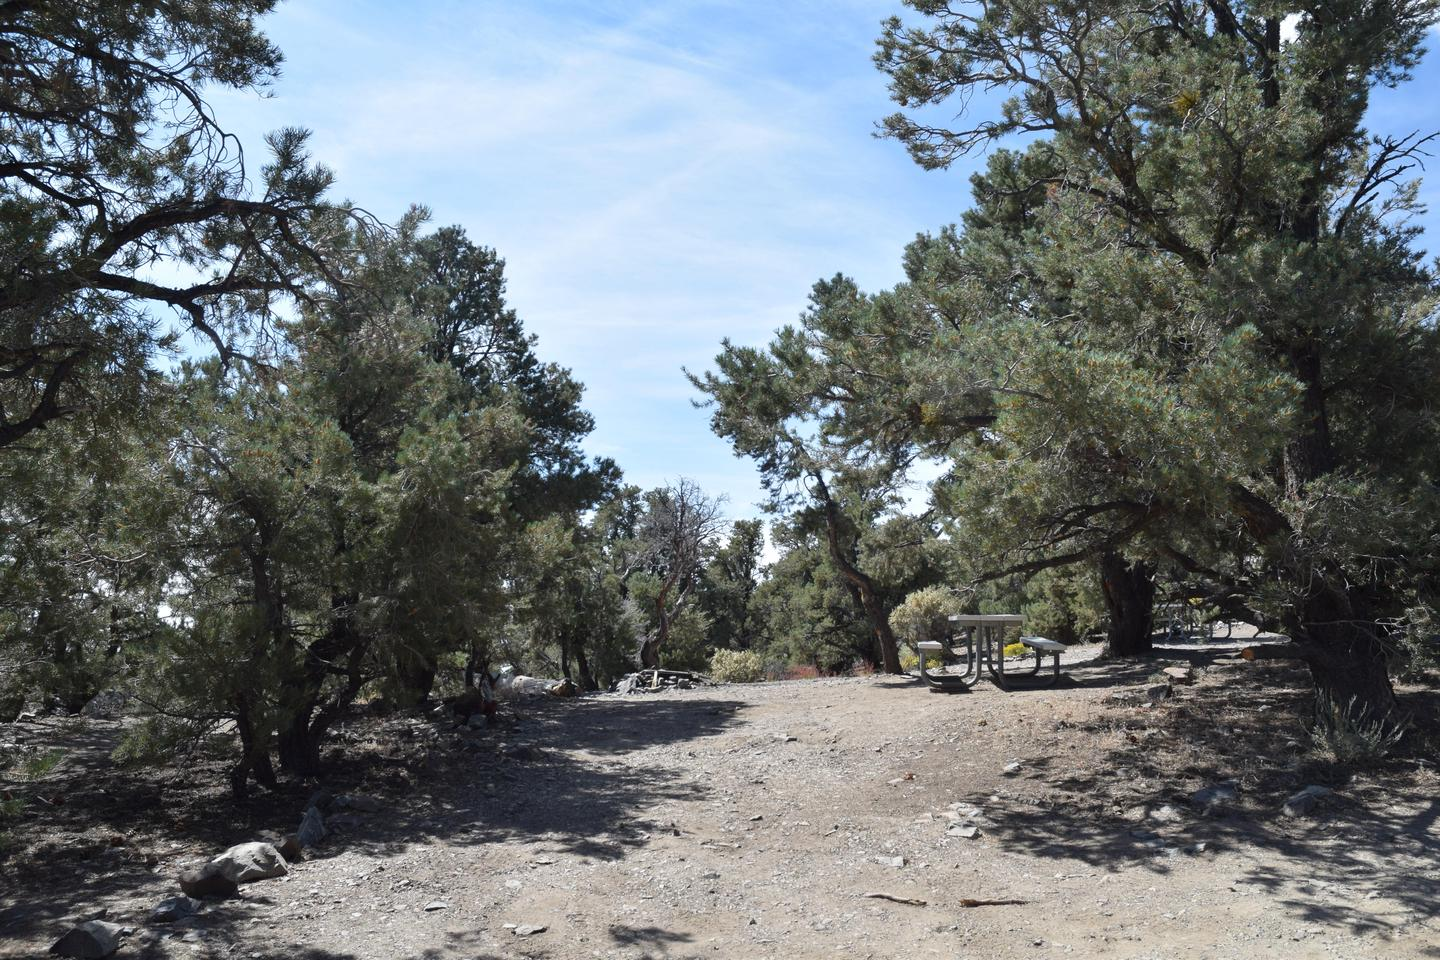 Mahogany Flat CampgroundSites are in a pinyon/juniper forest, with picnic tables and fire rings provided.